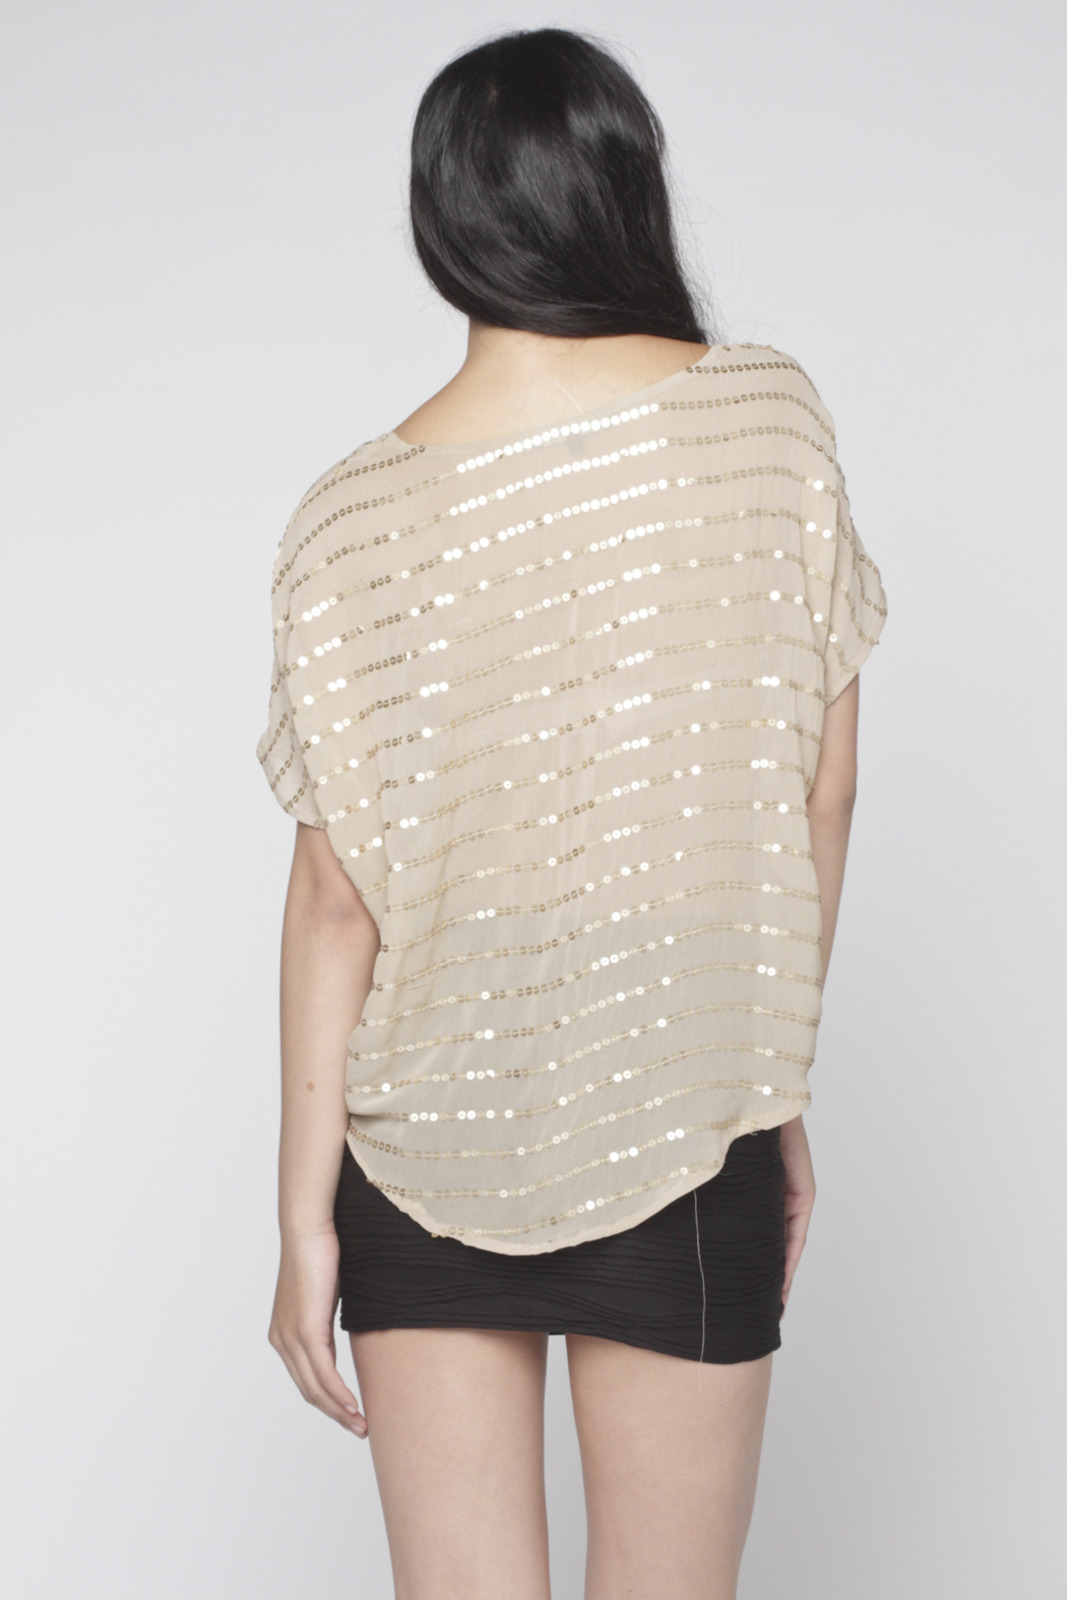 Matty M Sequin-Striped Blouse - Back Cropped Image